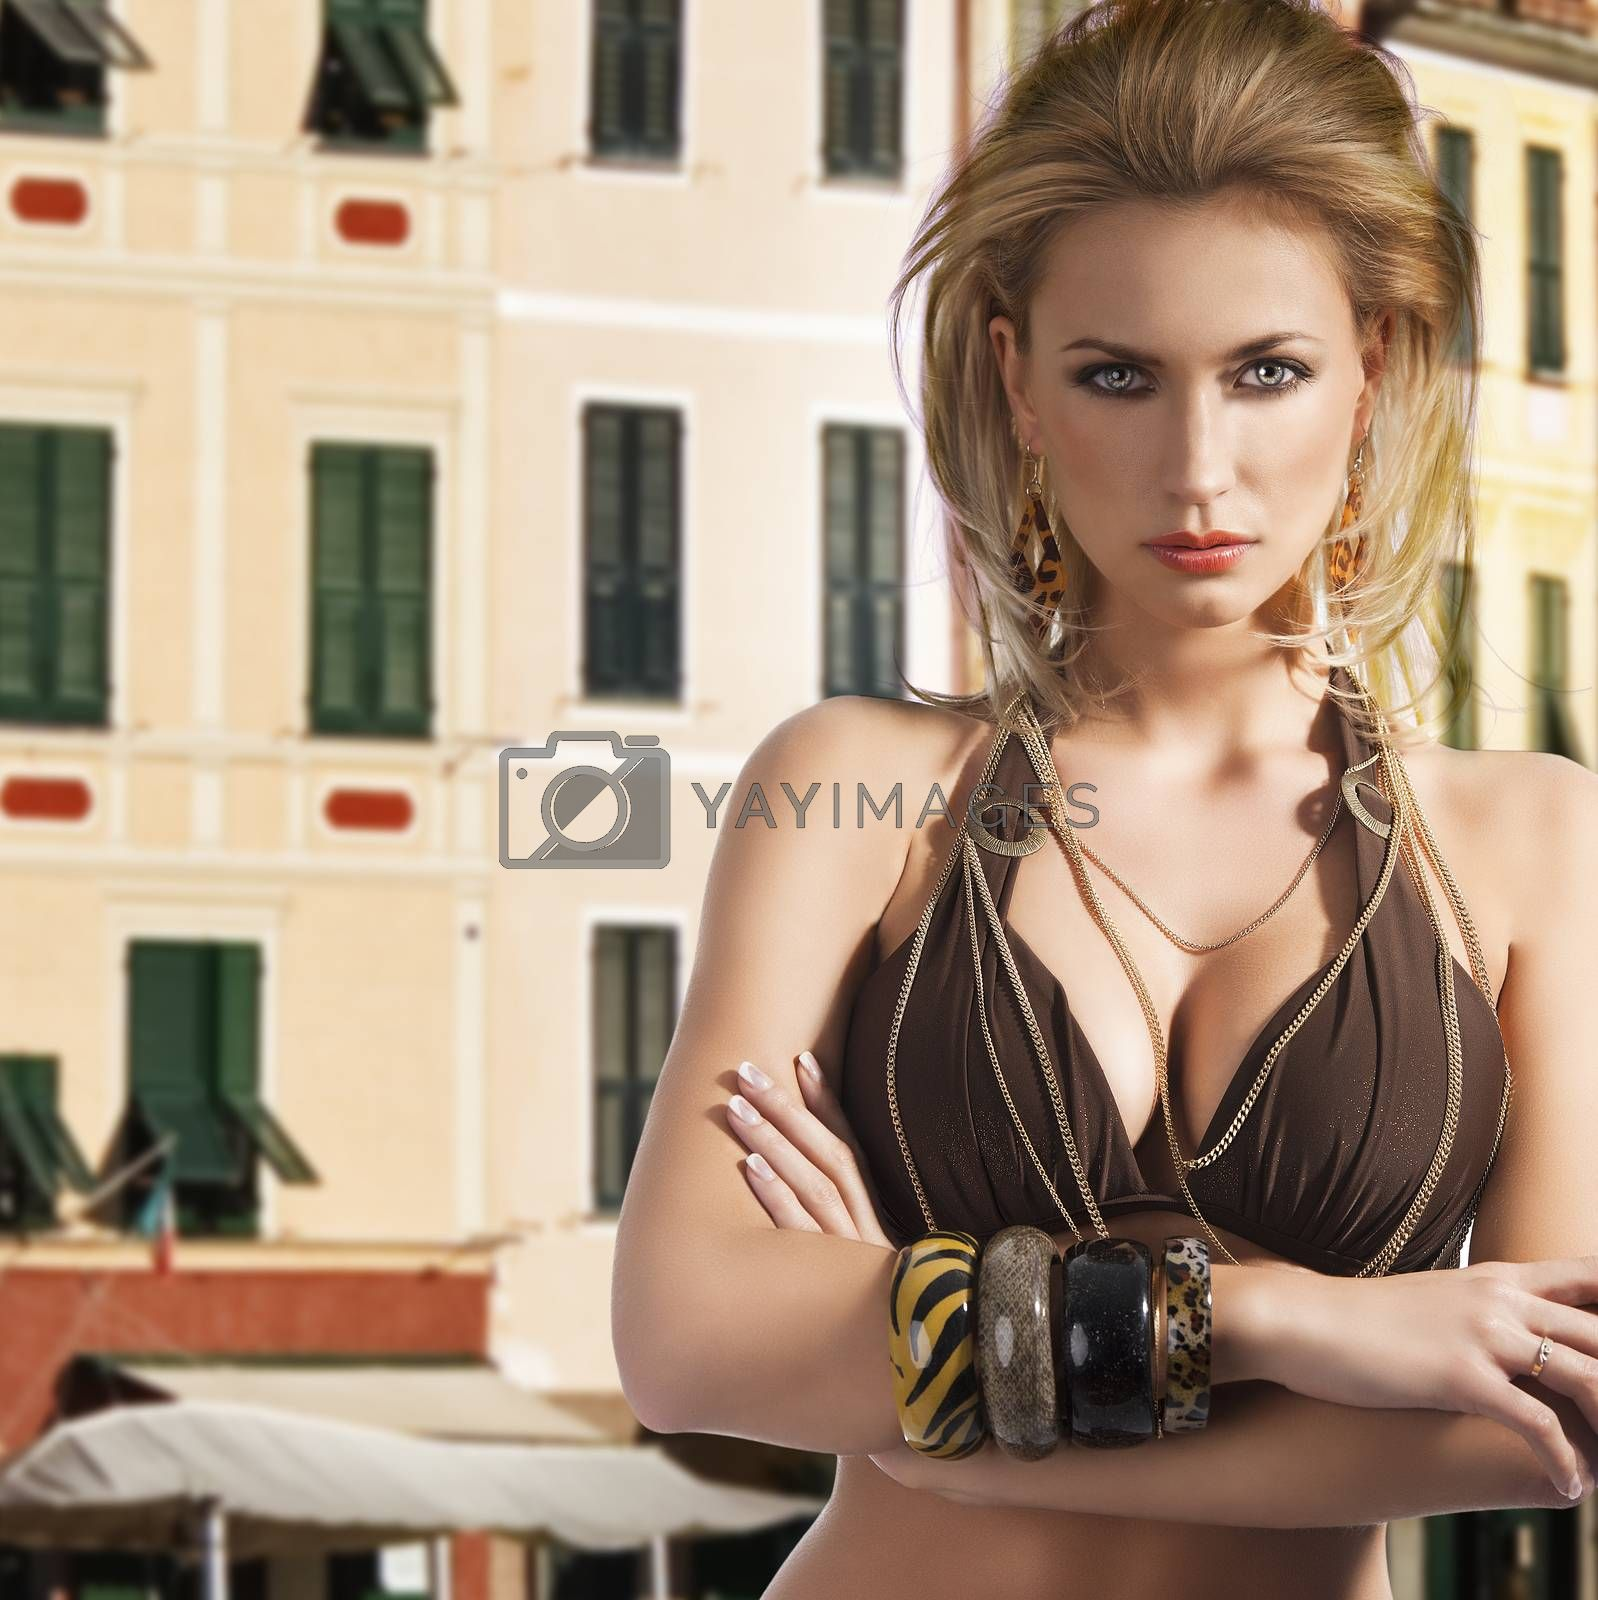 Royalty free image of bikini fashion summer girl, her arms are crossed by fotoCD